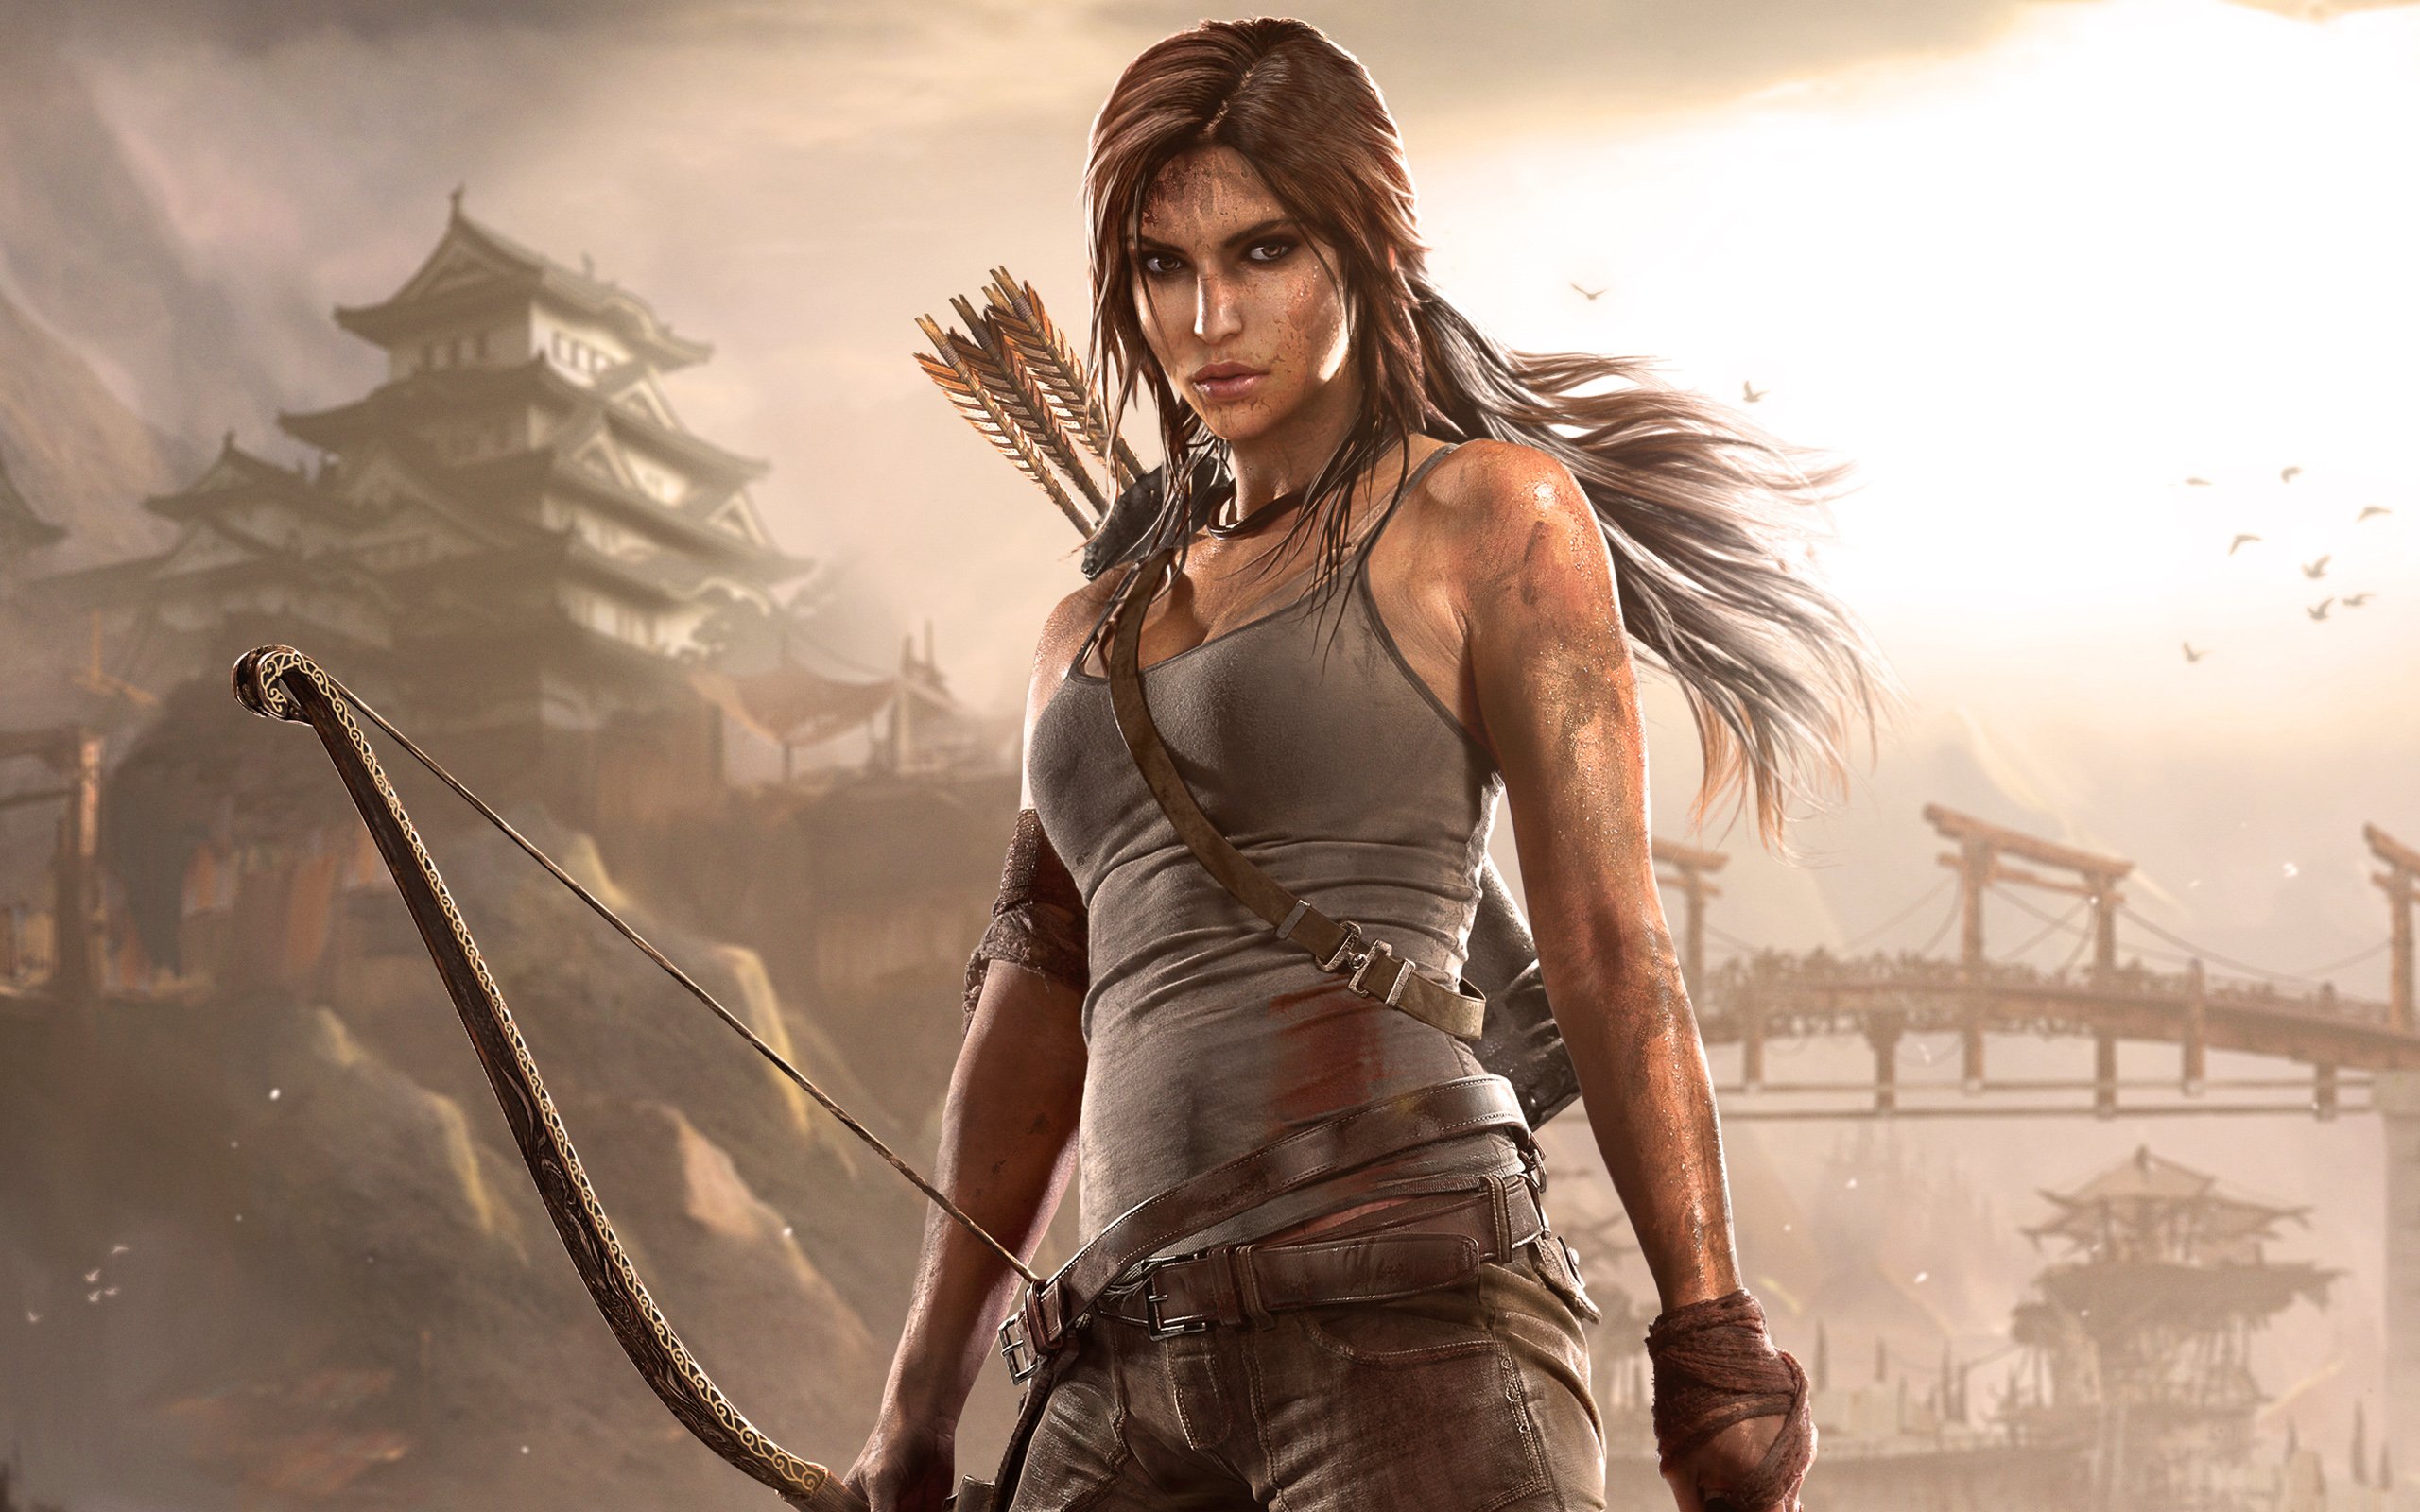 The Tomb Raider video game reboot has been largely praised for retaining the series's strong and smart female lead character, while shedding the franchise's ...